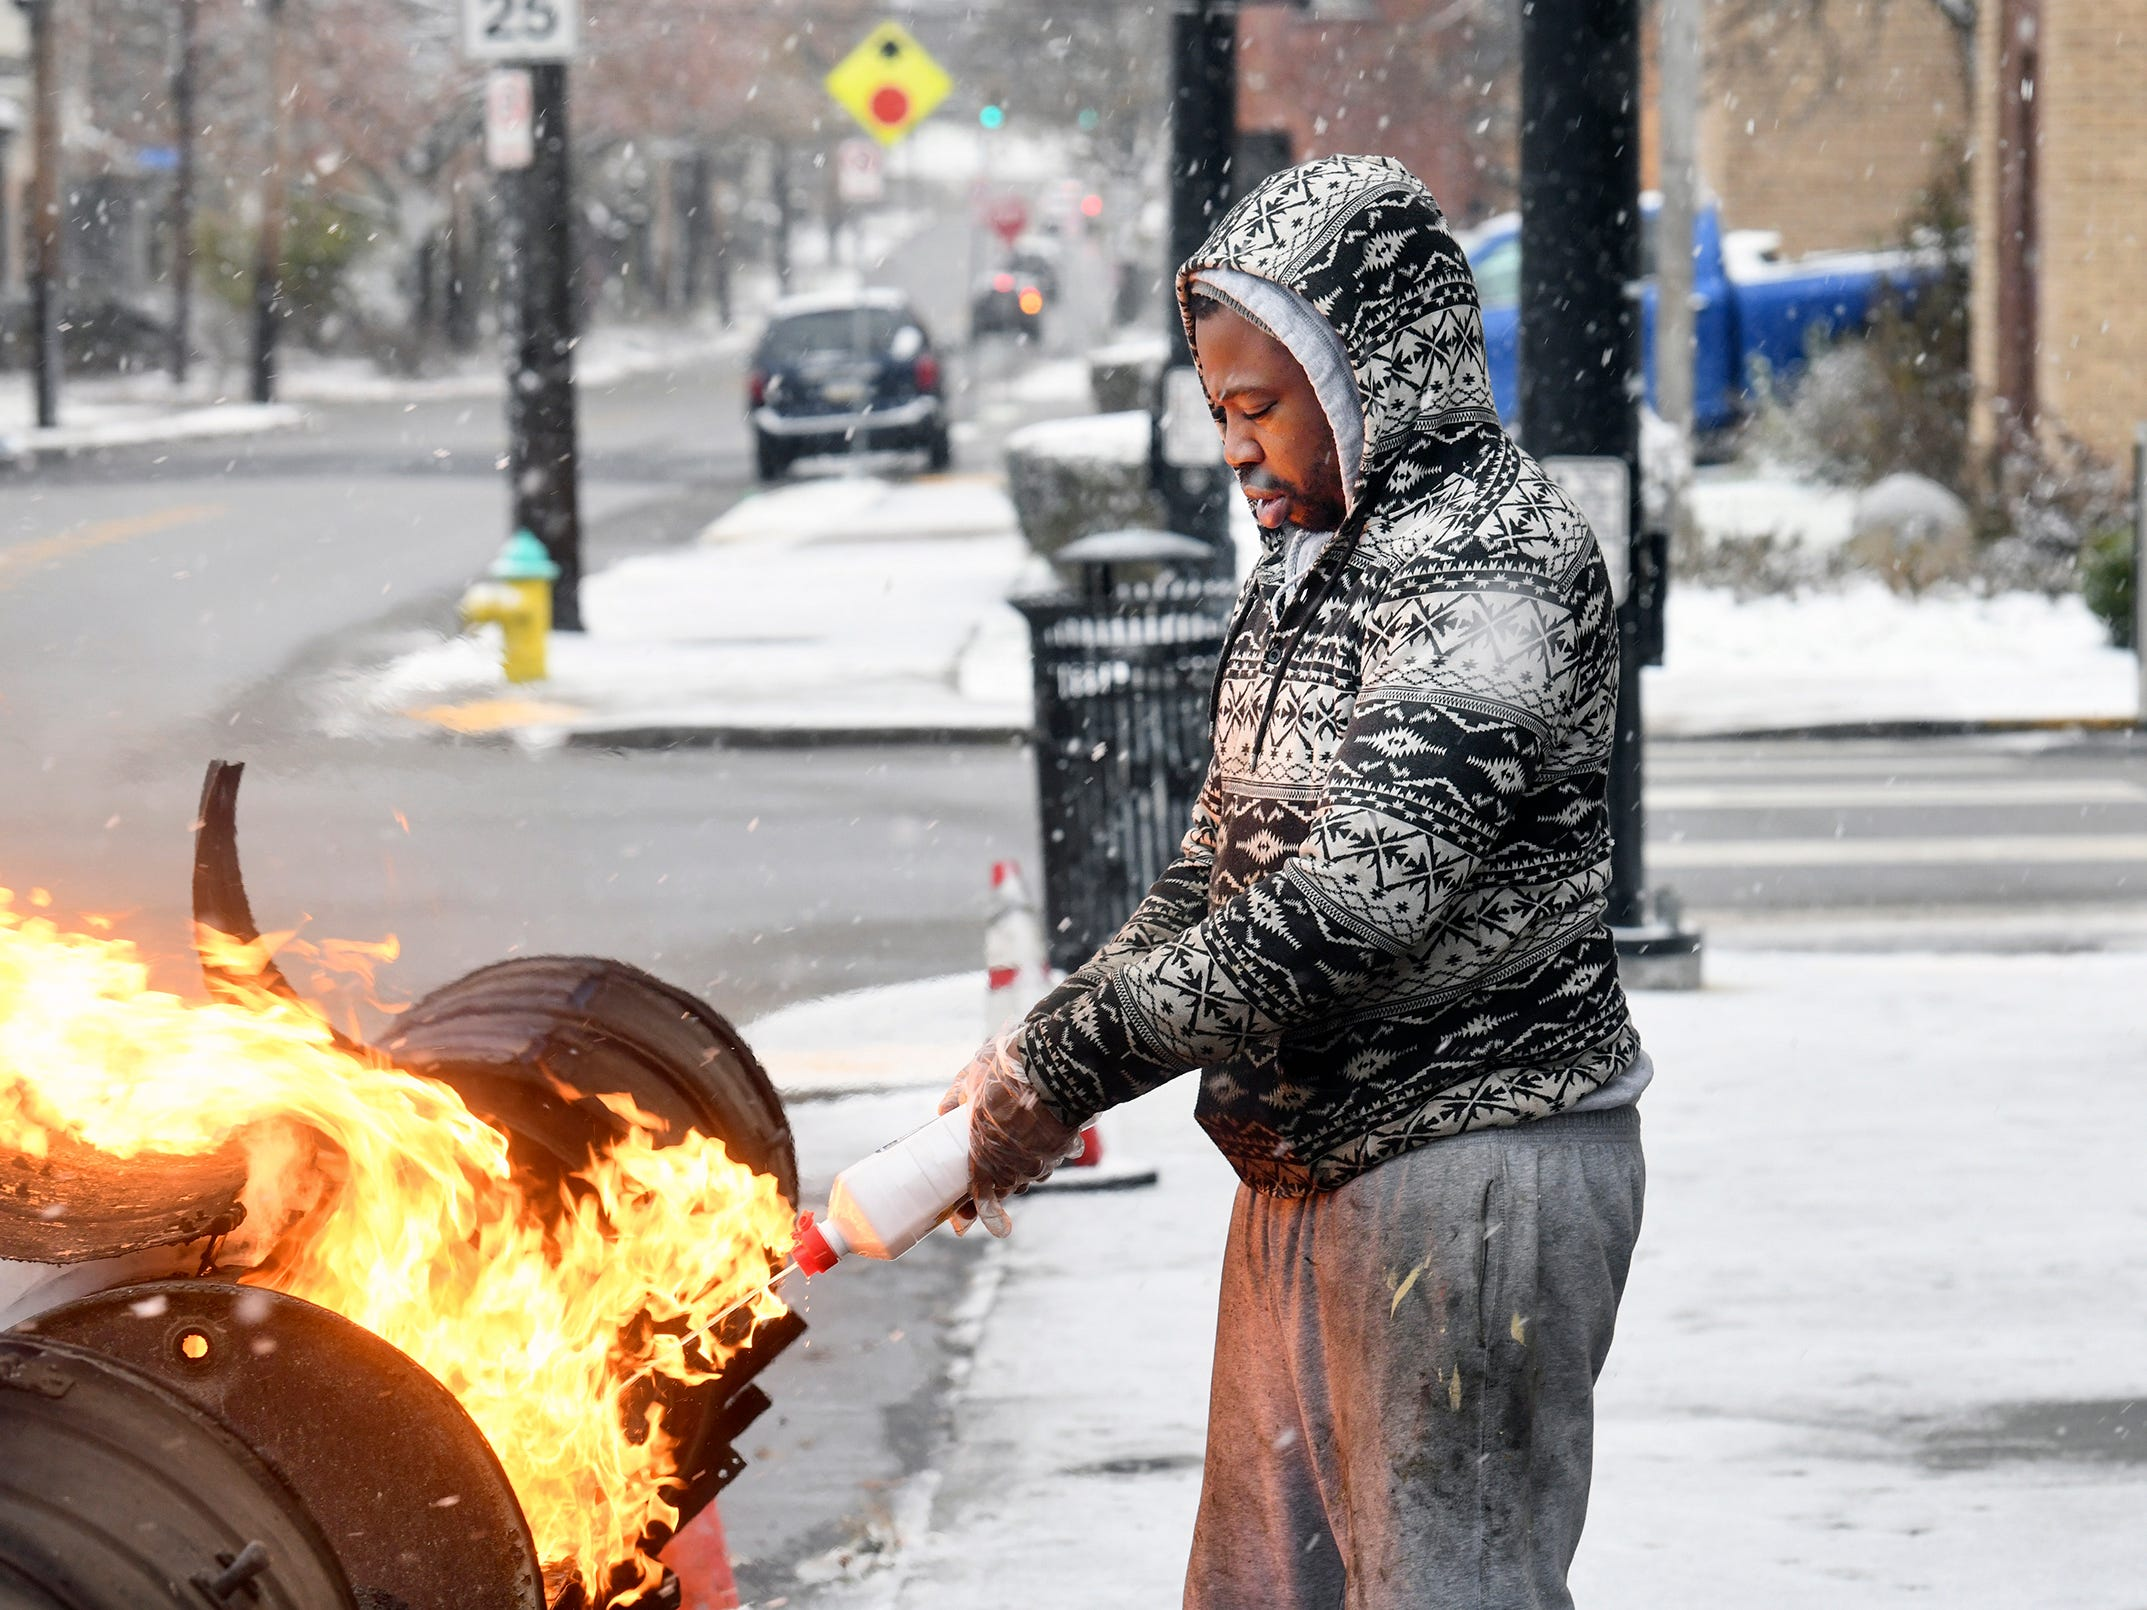 Aaron Bevins fires up the coals as snow falls on Nov. 27, 2018, at The Dream barbecue restaurant on N. Braddock Avenue in Pittsburgh neighborhood, Homewood.